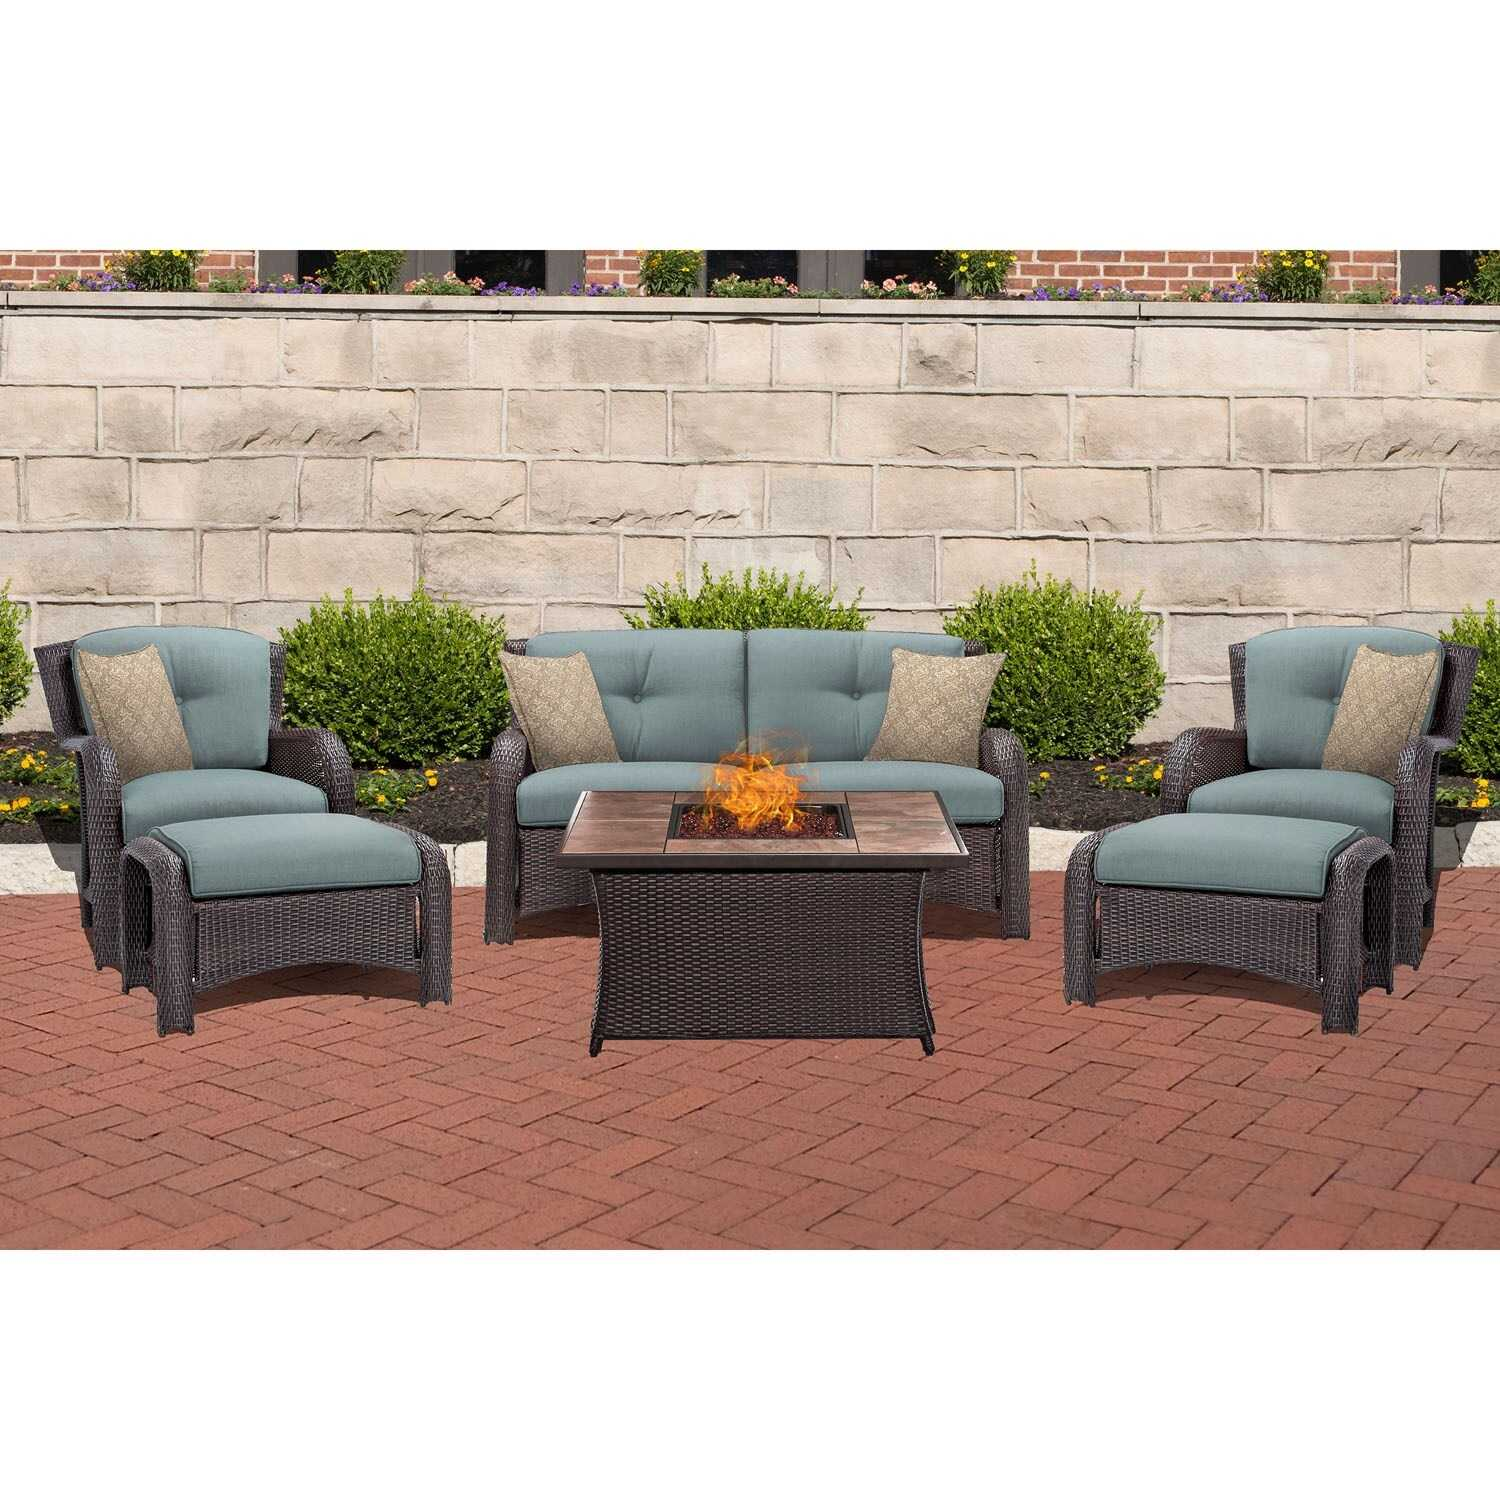 Hanover  Strathmere  6 pc. Espresso  Steel  Firepit Seating Set  Blue